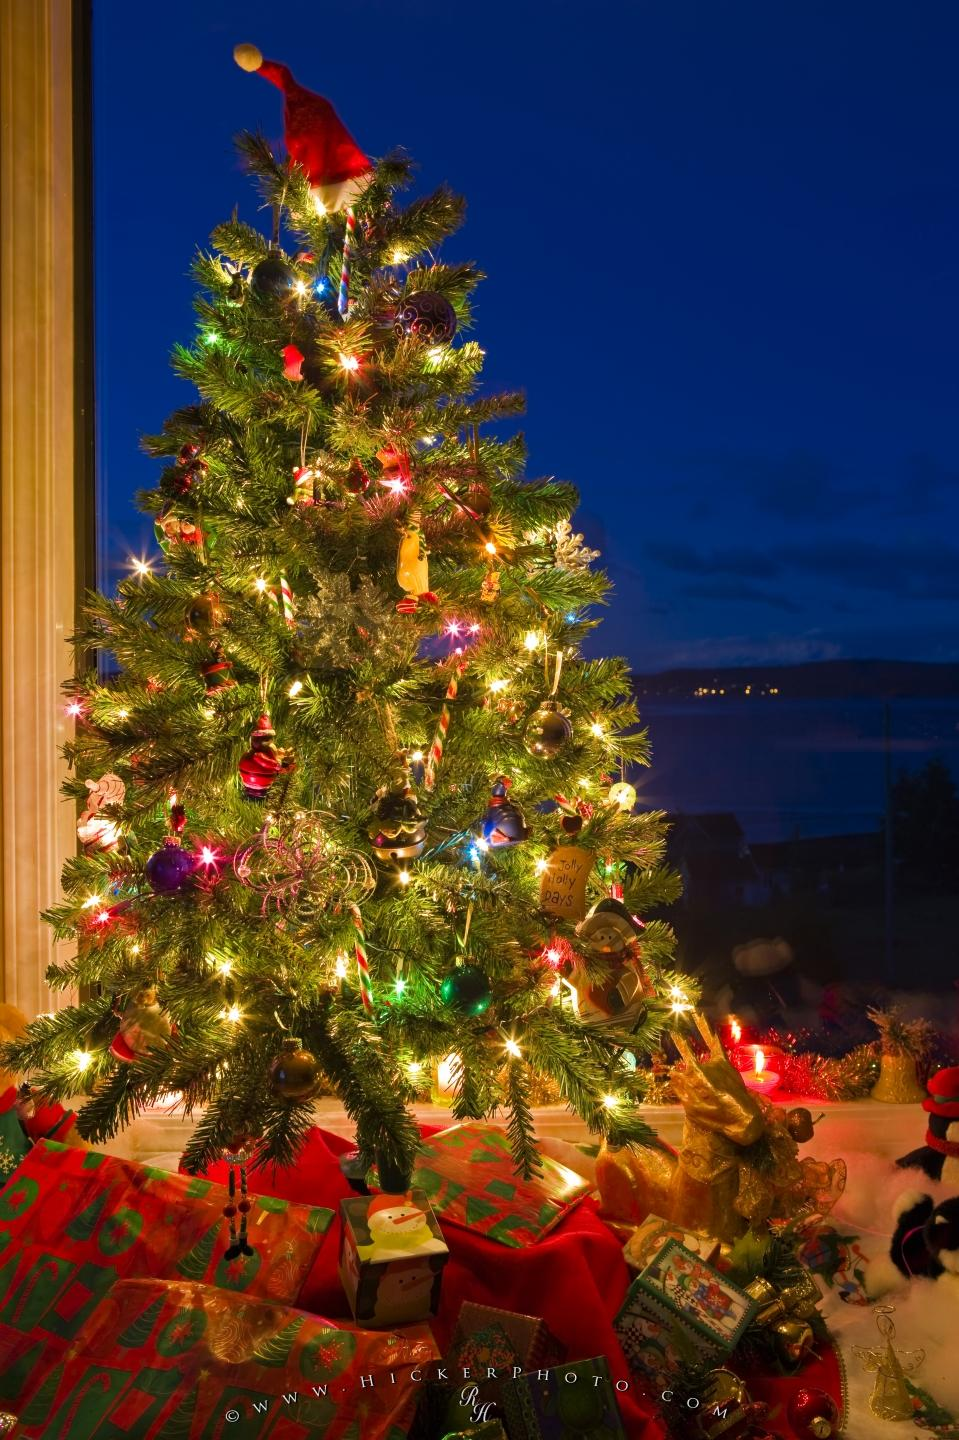 Free Wallpaper Size 1440px Photo Traditional Christmas Tree